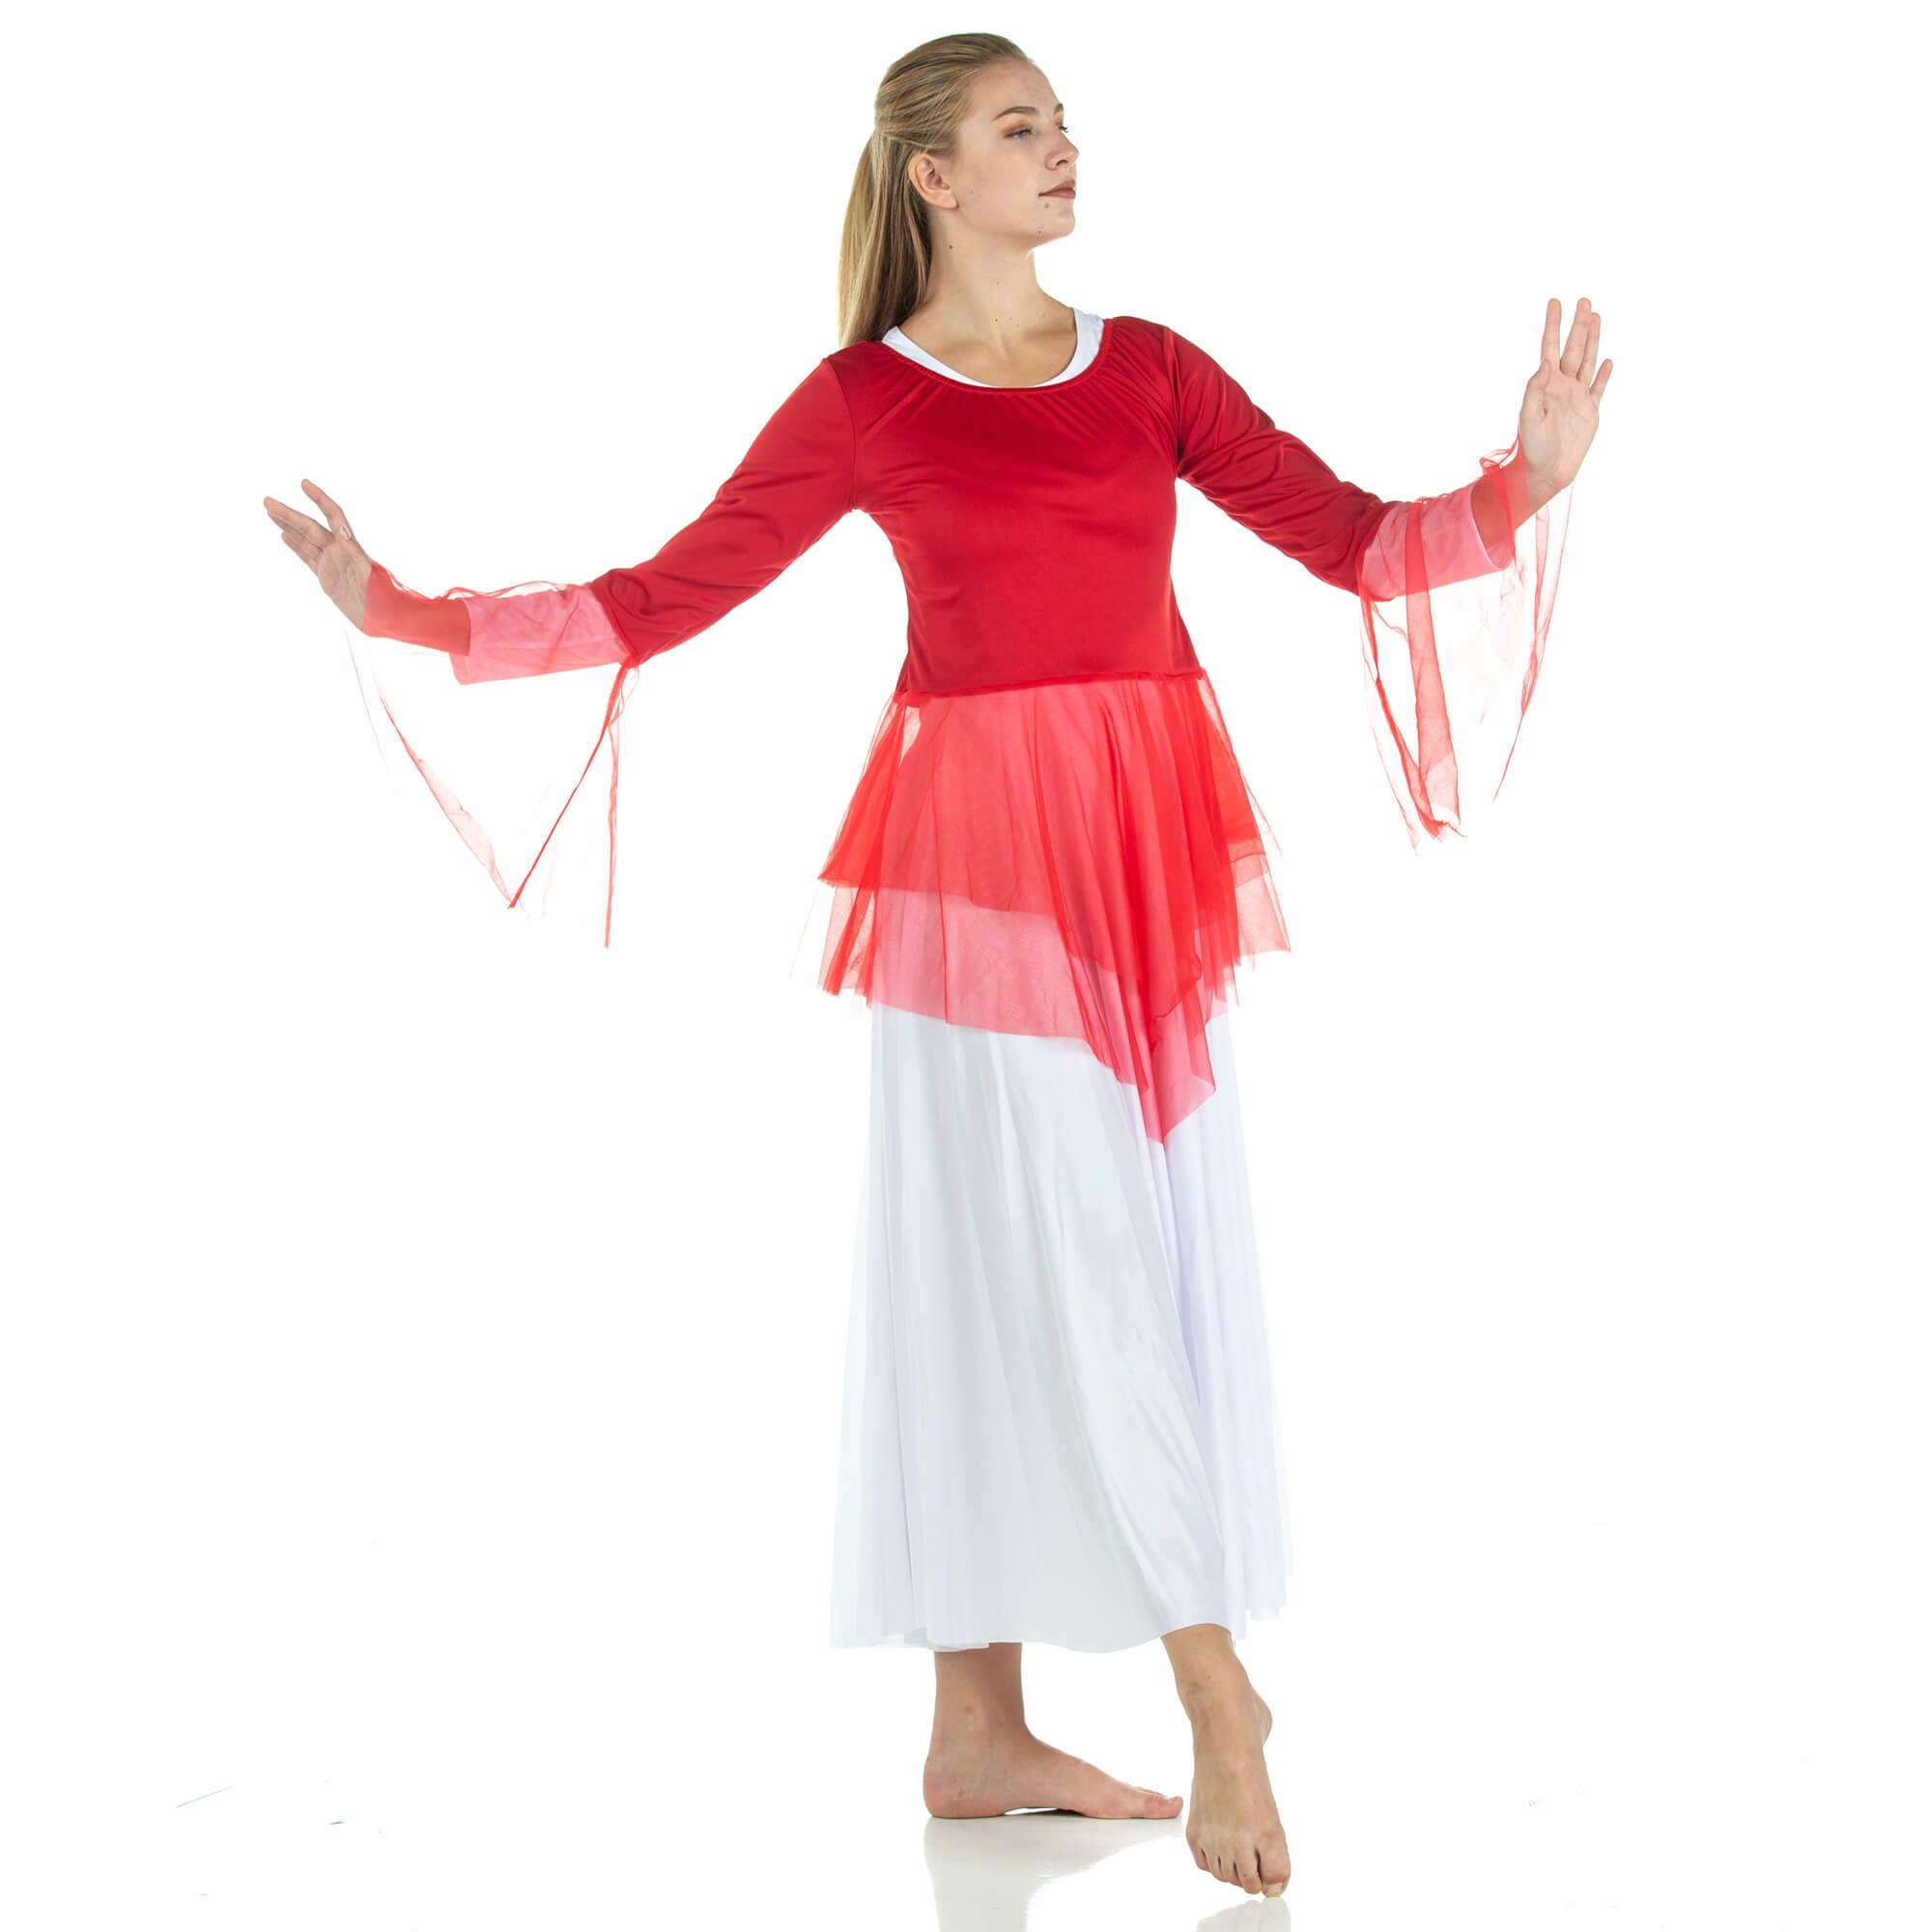 Danzcue Ministry Dance Chiffon Skirted Tunic